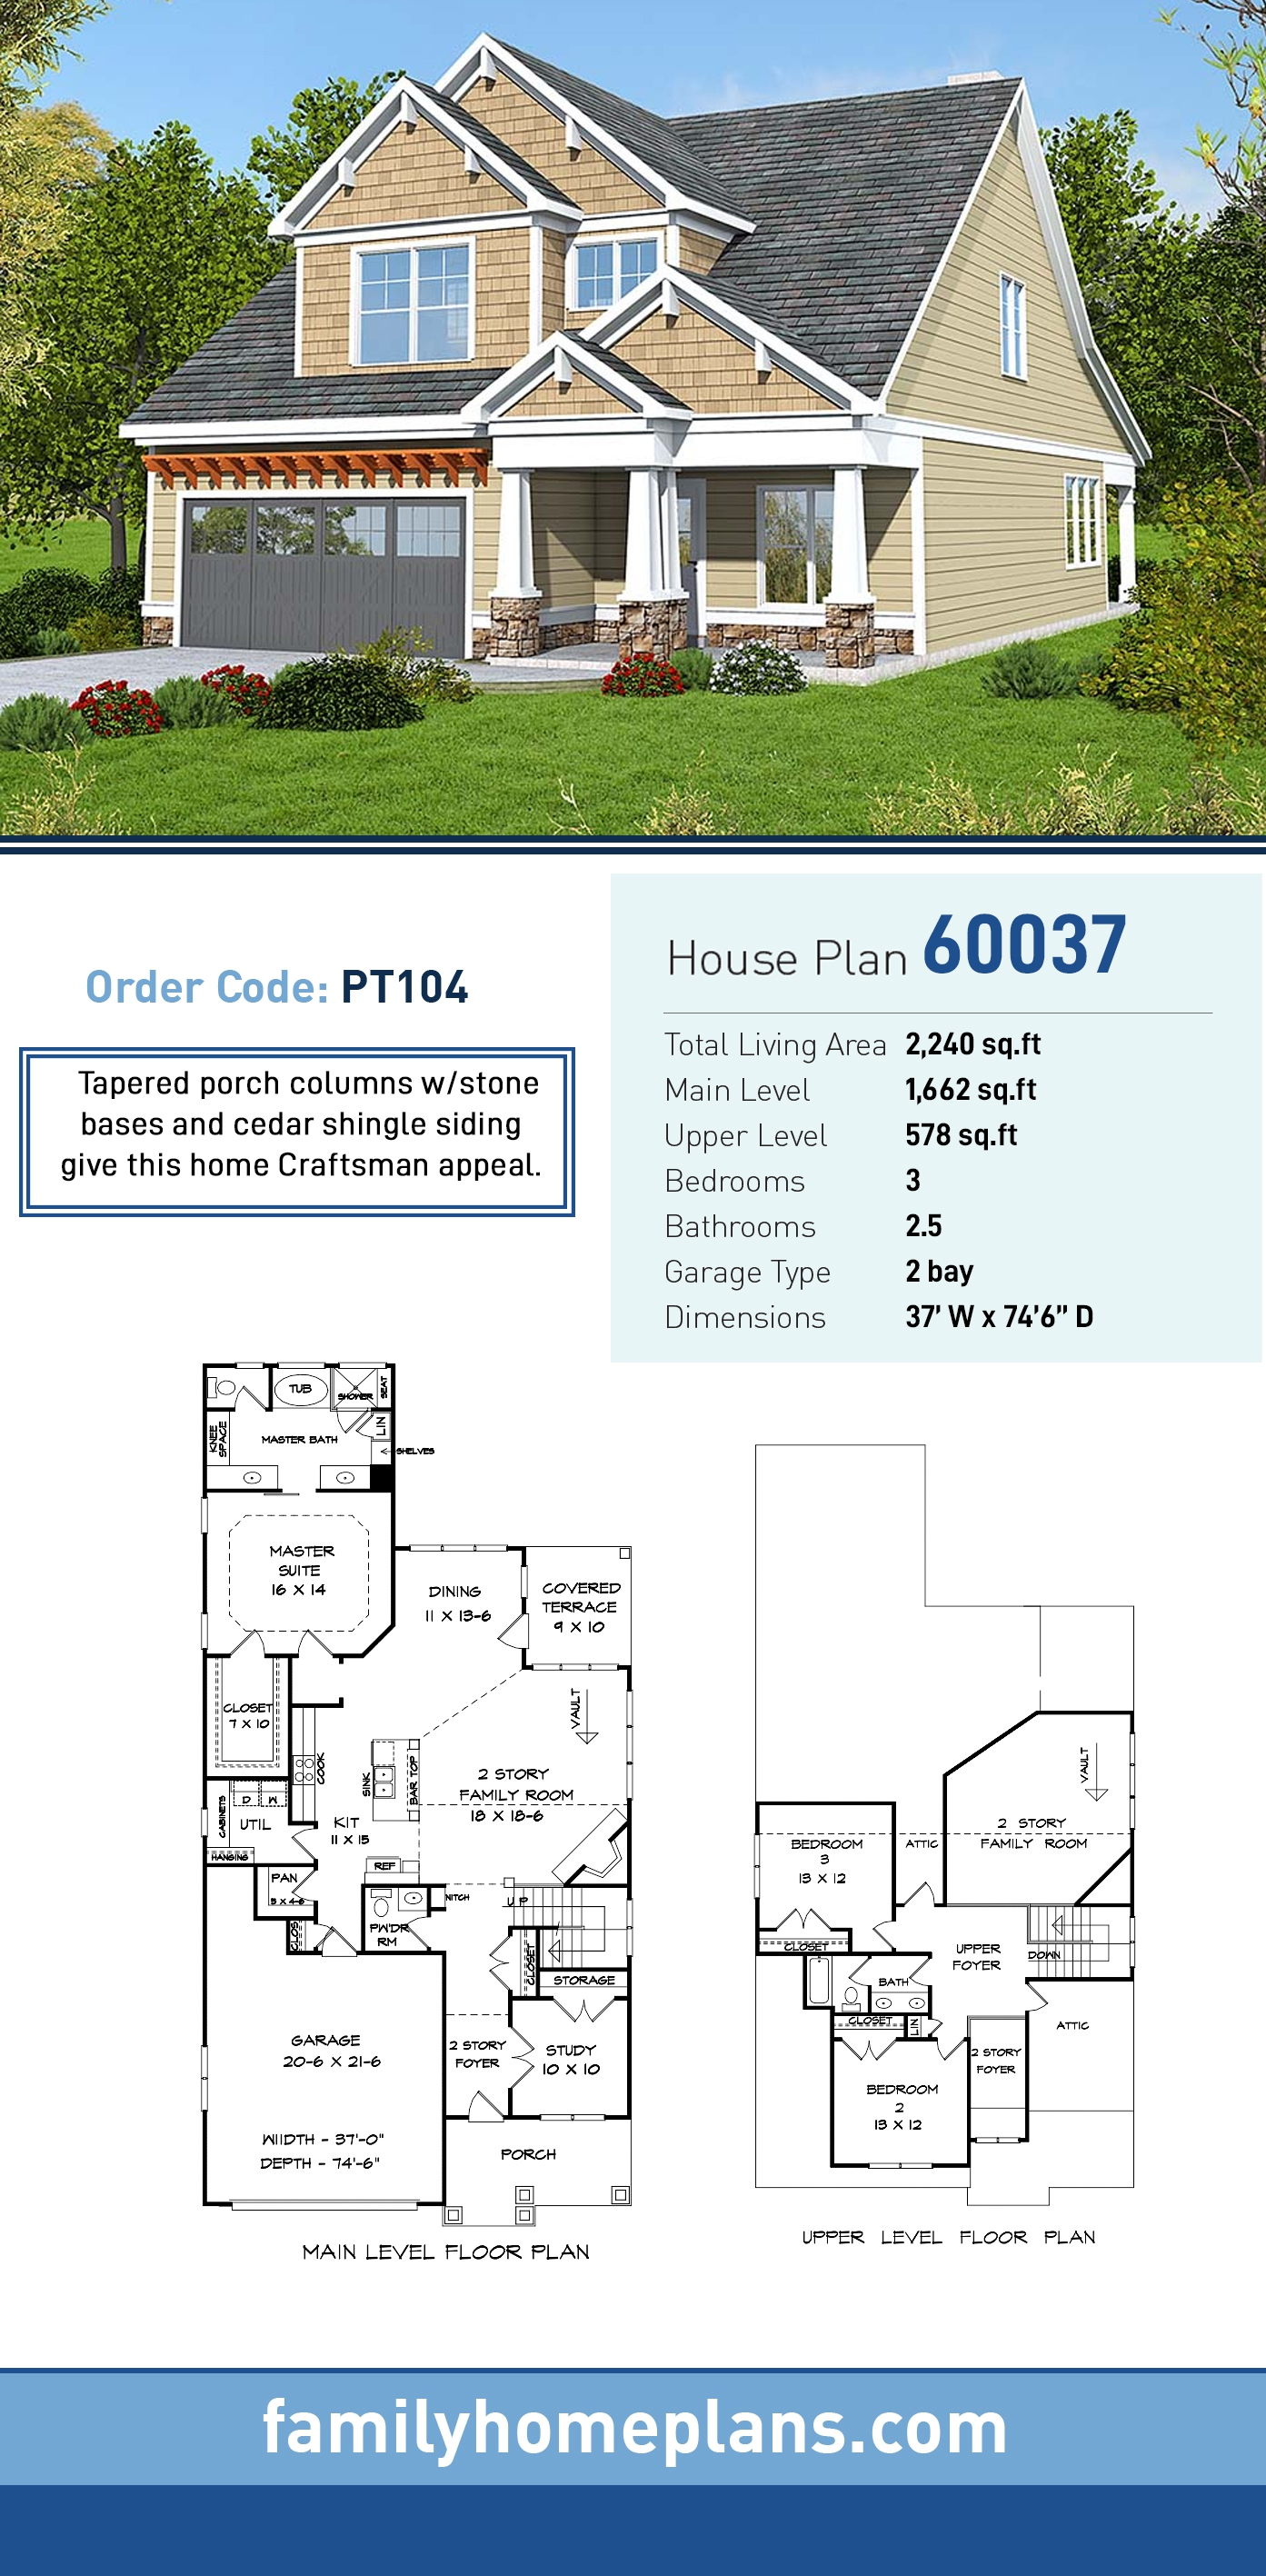 Bungalow, Cottage, Craftsman, Traditional House Plan 60037 with 3 Beds, 3 Baths, 2 Car Garage